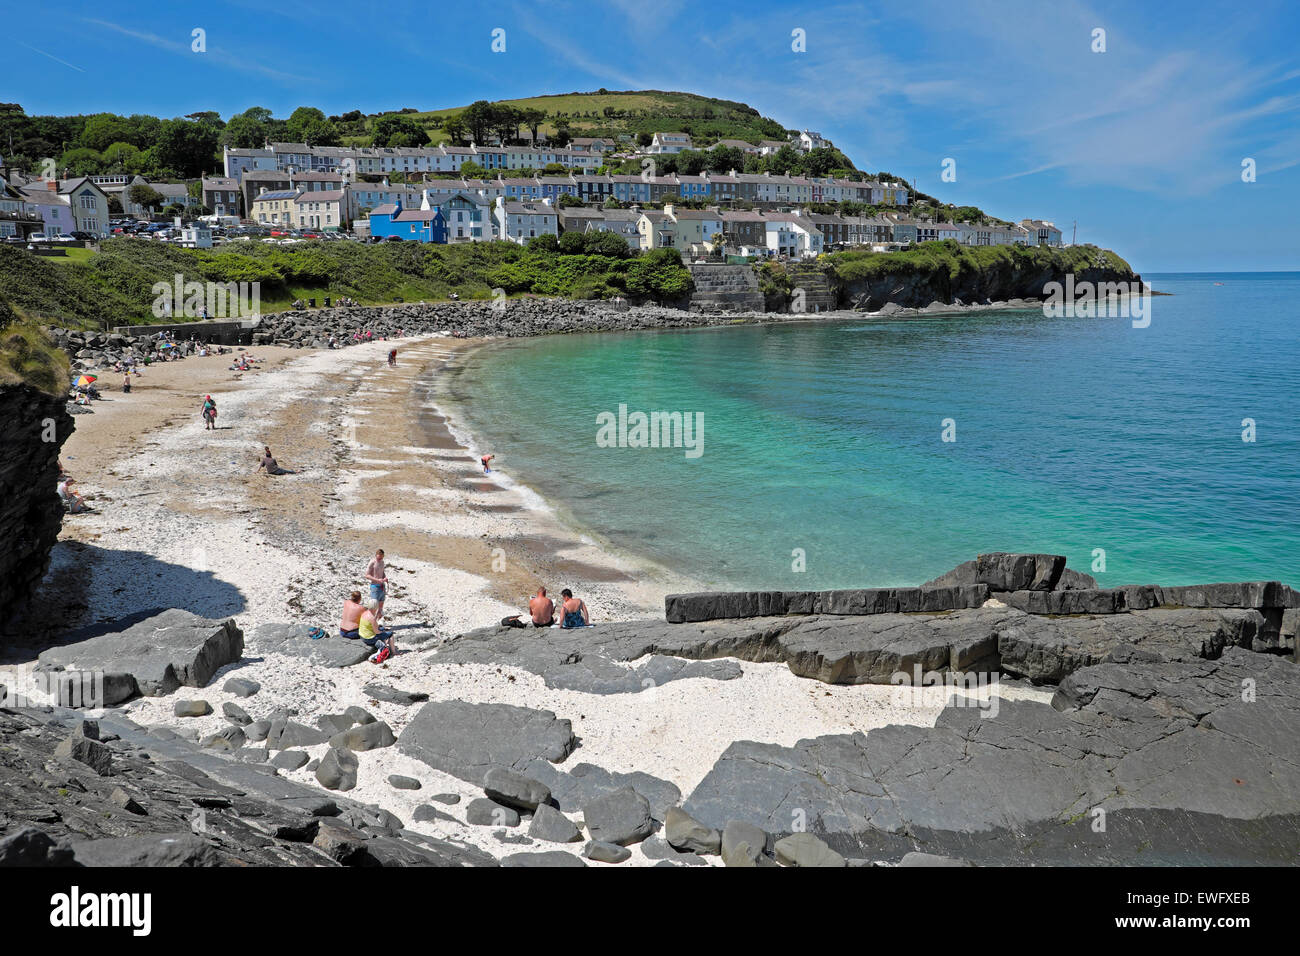 Beach on hot summer day in June with a view of terraced housing on hill New Quay, Ceredigion Wales UK  KATHY DEWITT - Stock Image